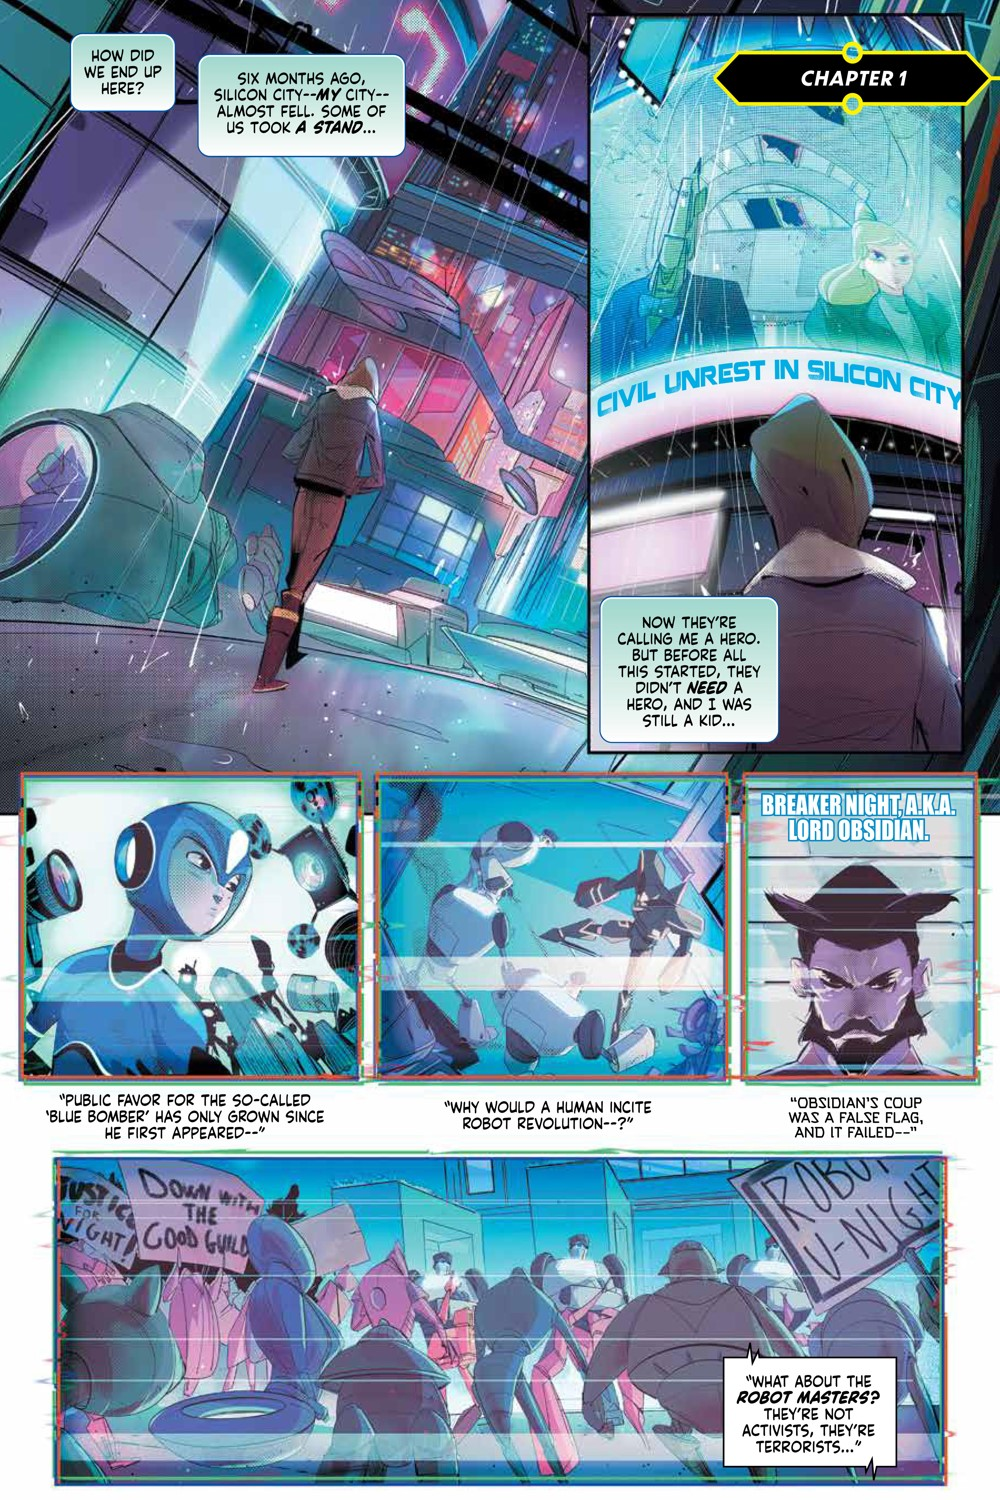 MegaMan_FullyCharged_SC_PRESS_7 ComicList Previews: MEGA MAN FULLY CHARGED TP